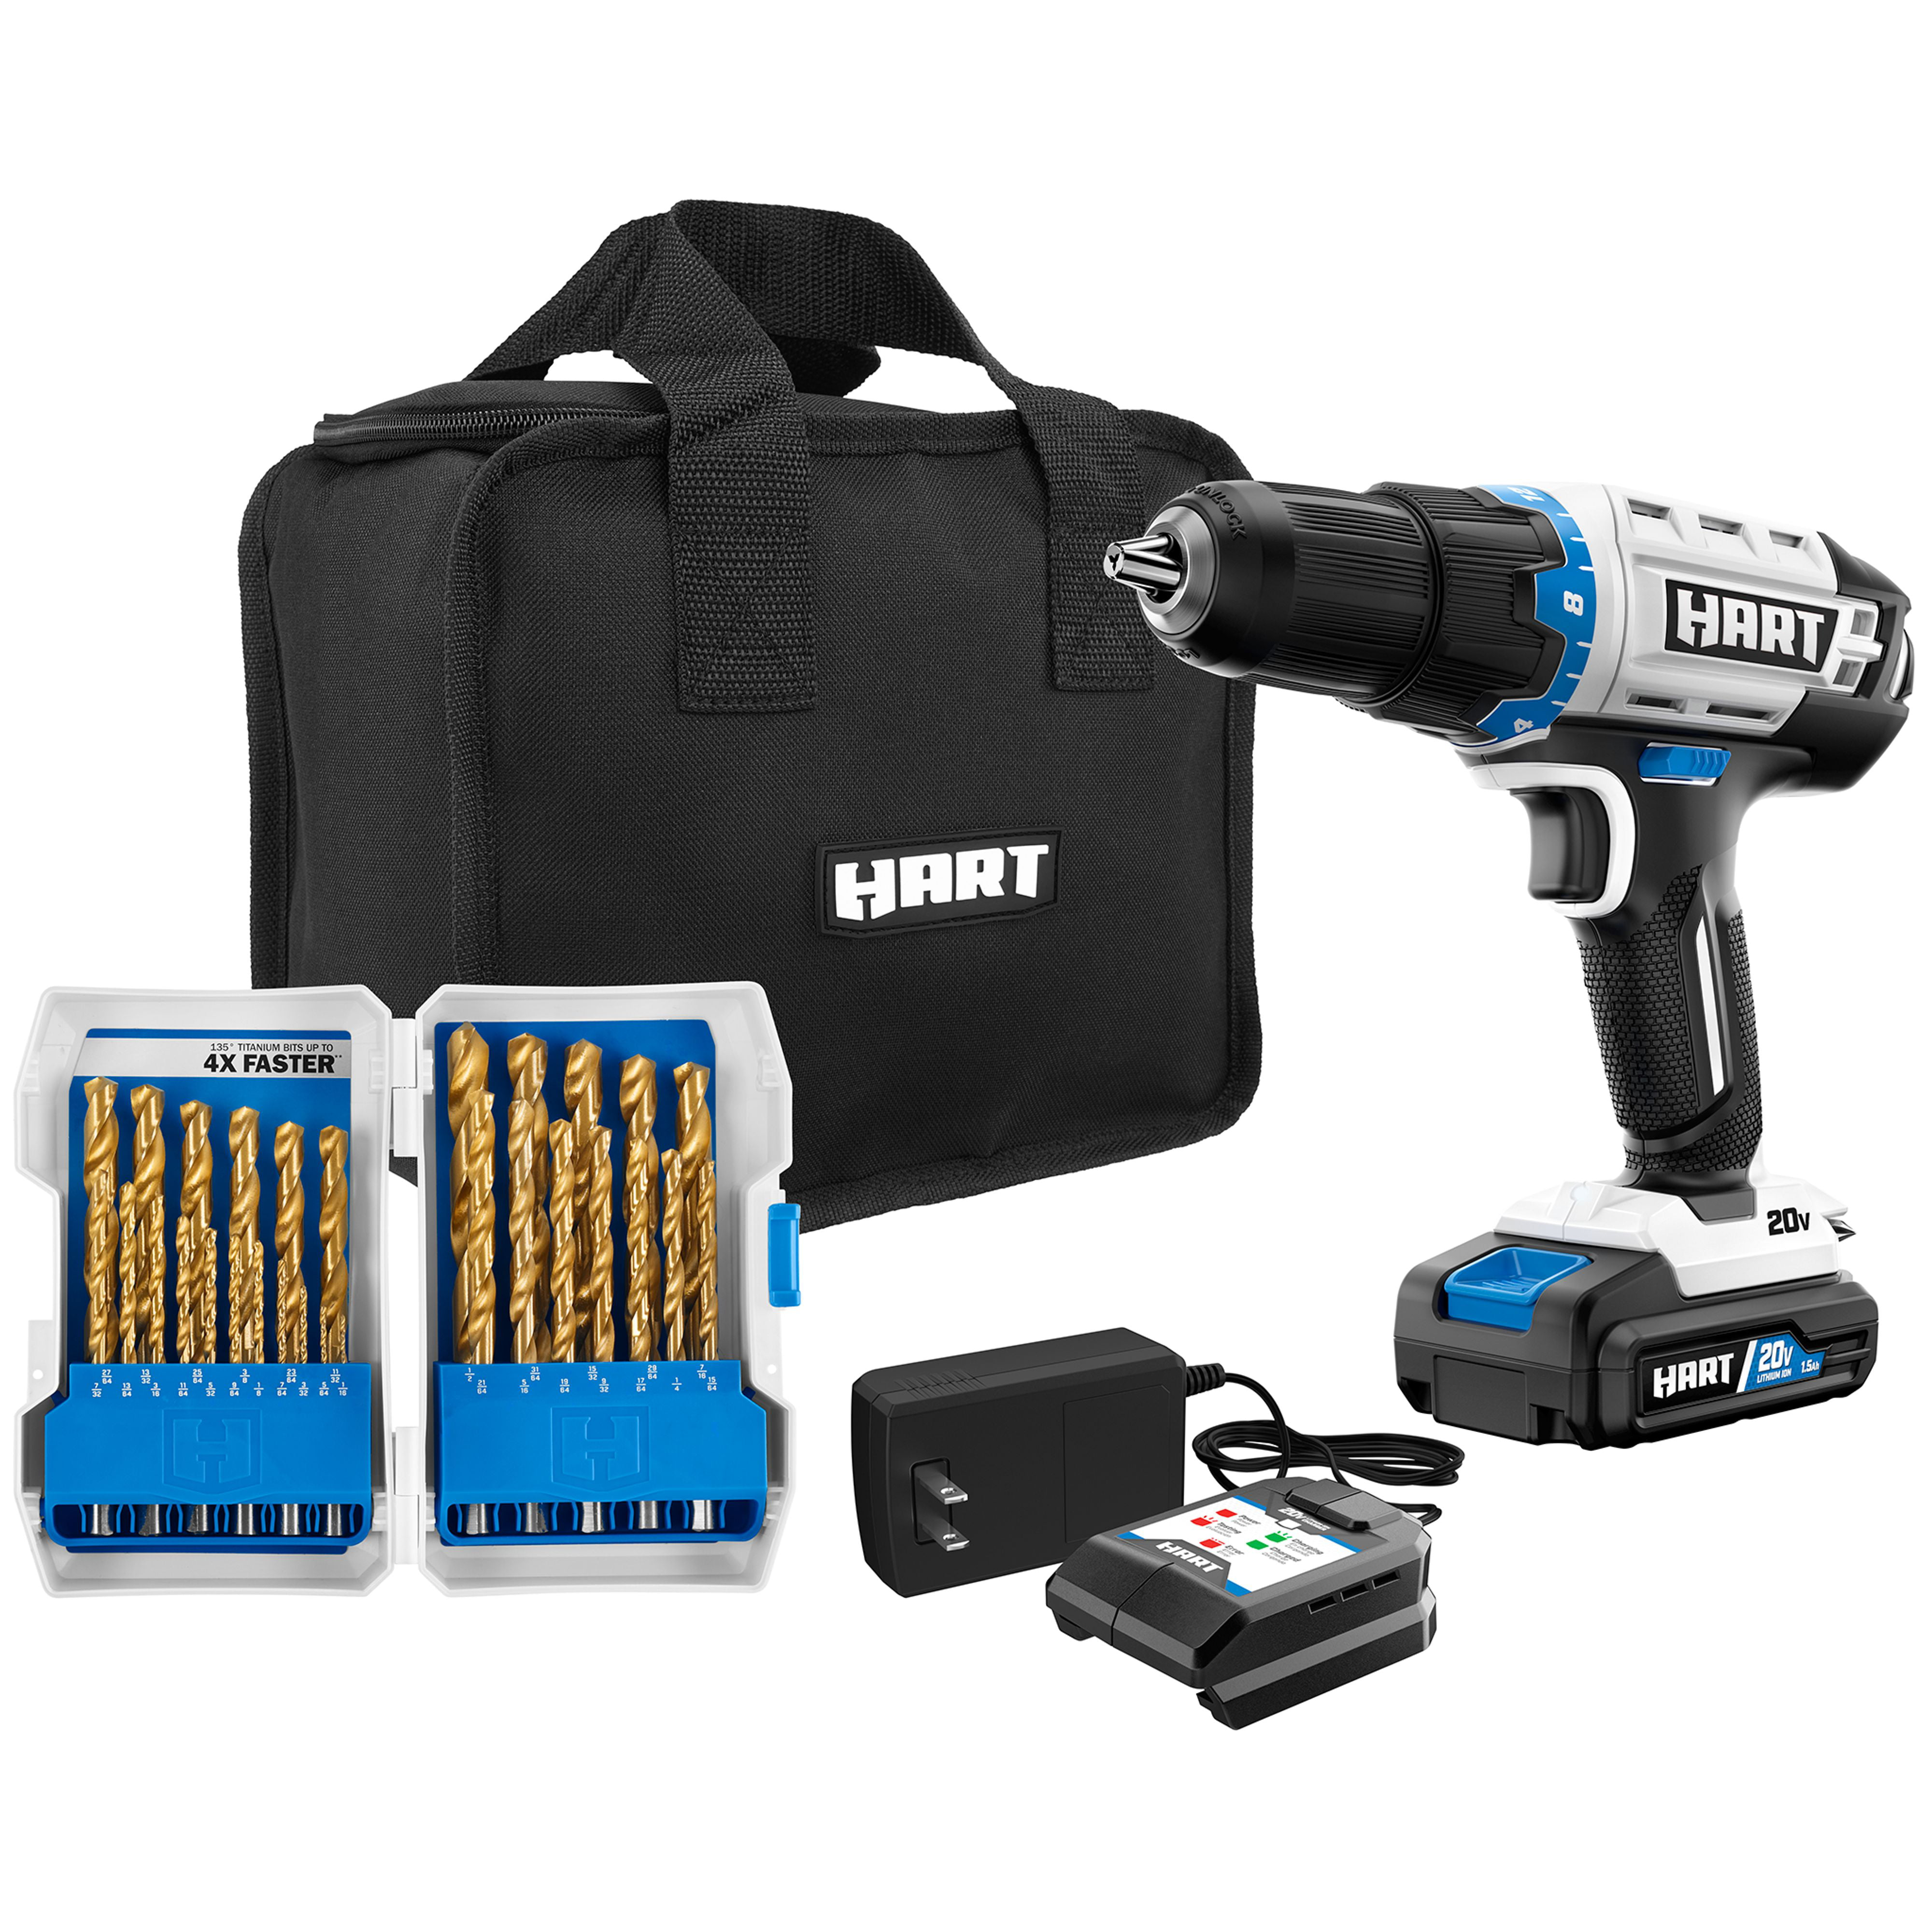 Hart 20 Volt Cordless 1 2 Inch Drill Kit With 29 Piece Accessory And 10 Inch Storage Bag 1 1 5ah Lithium Ion Battery Walmart Com Walmart Com